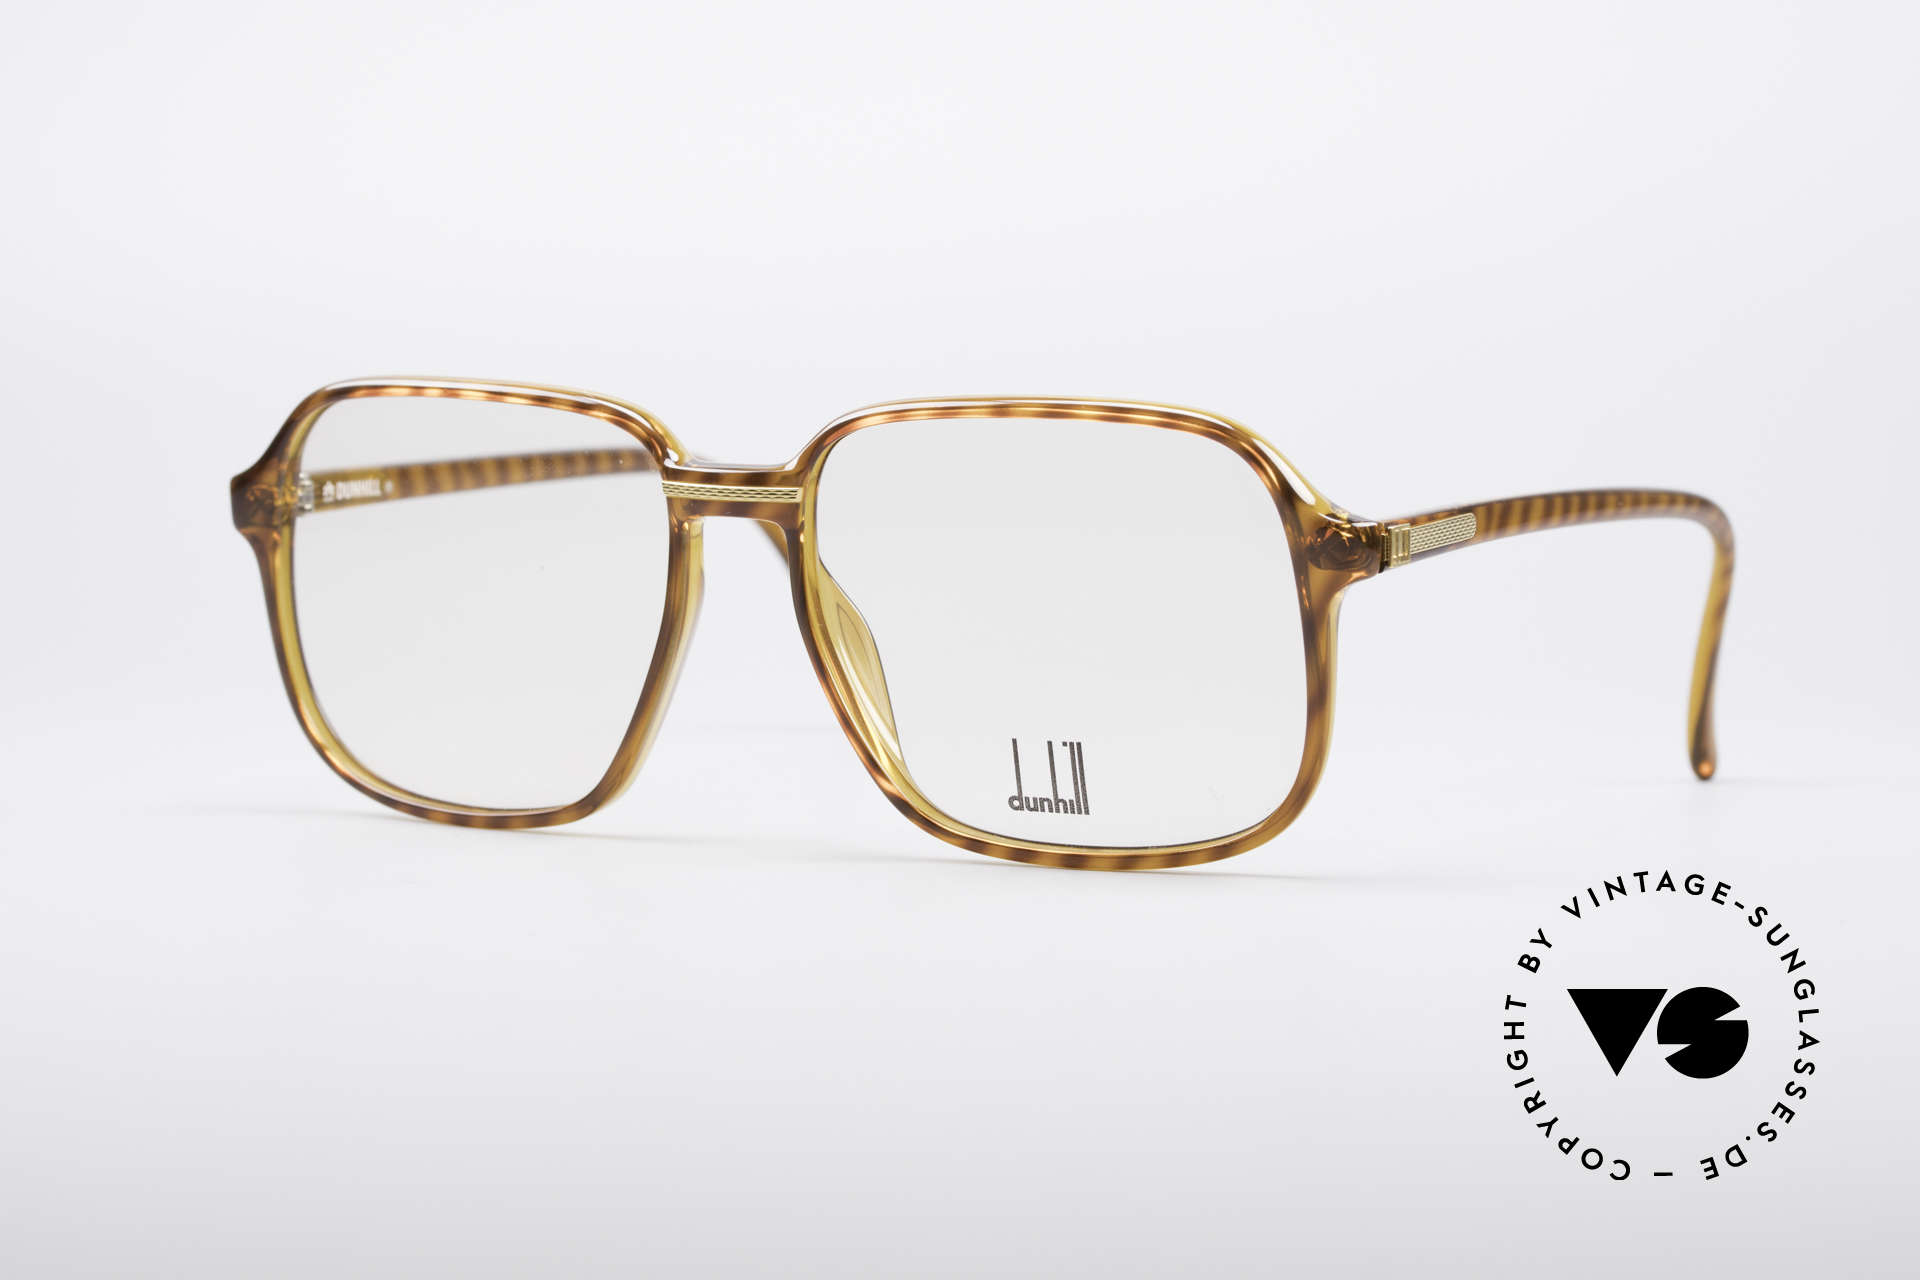 Dunhill 6060 Classic 80's Eyeglasses, striking designer glasses by Alfred Dunhill from 1987, Made for Men